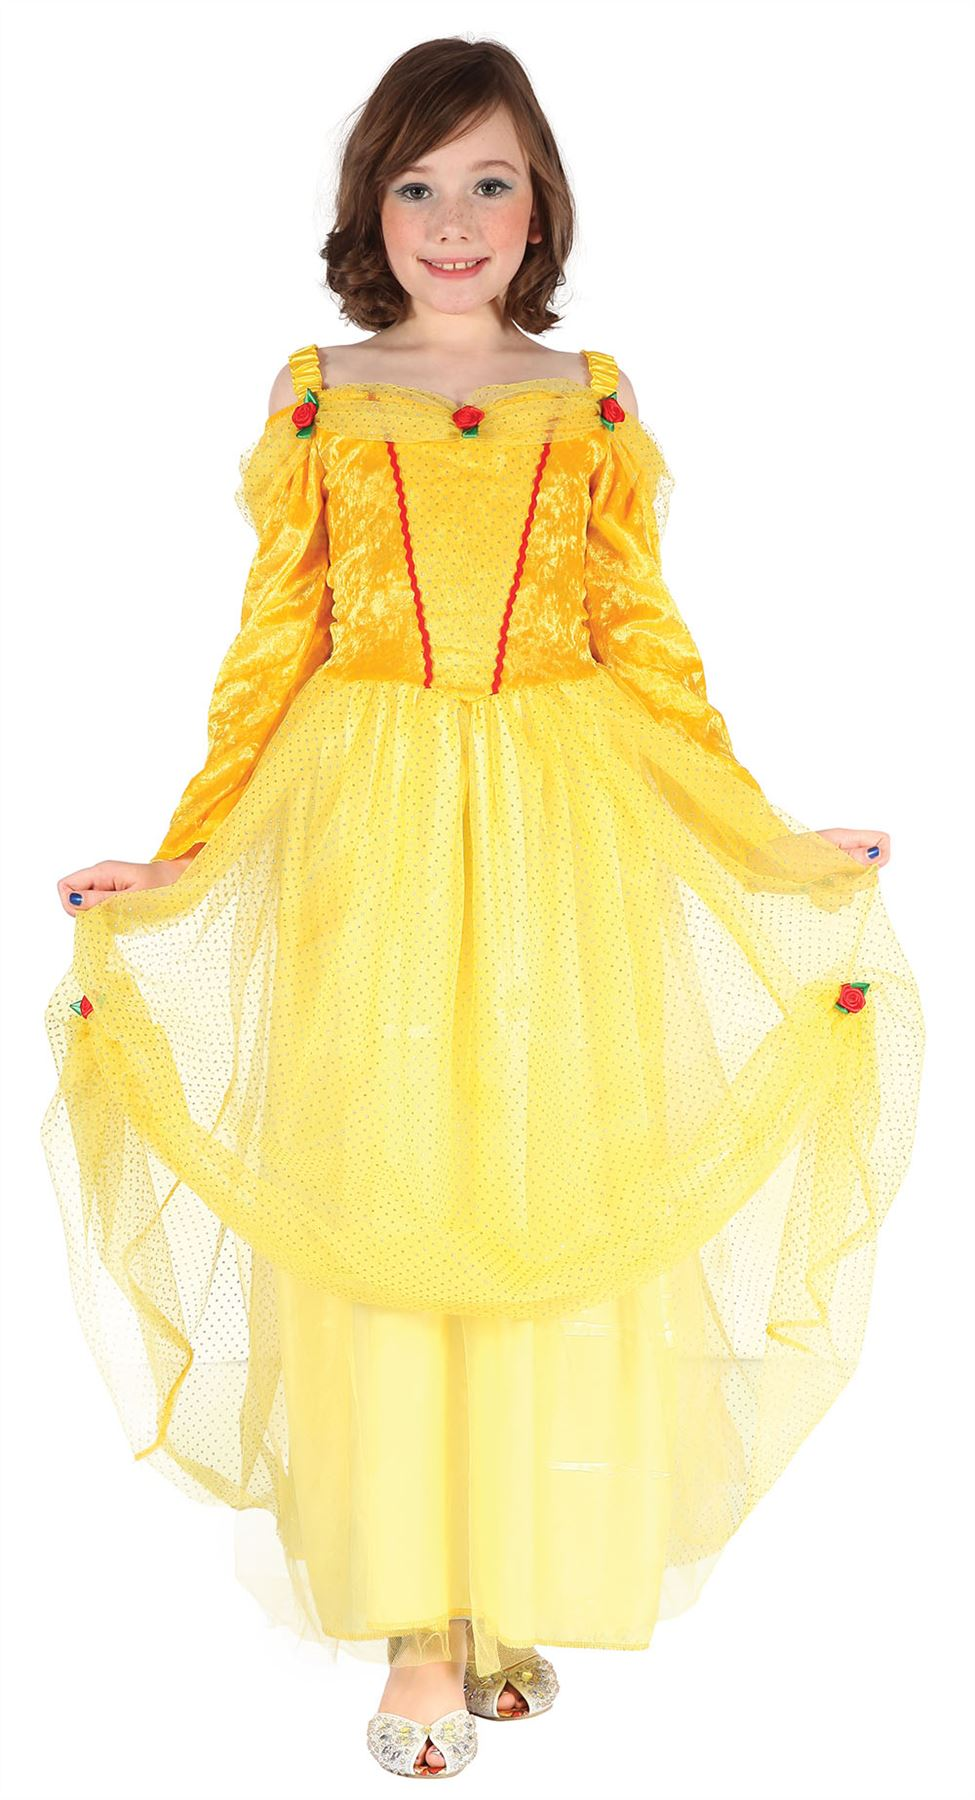 Princess Dress Yellow, Belle, Beauty and the Beast Fancy ...